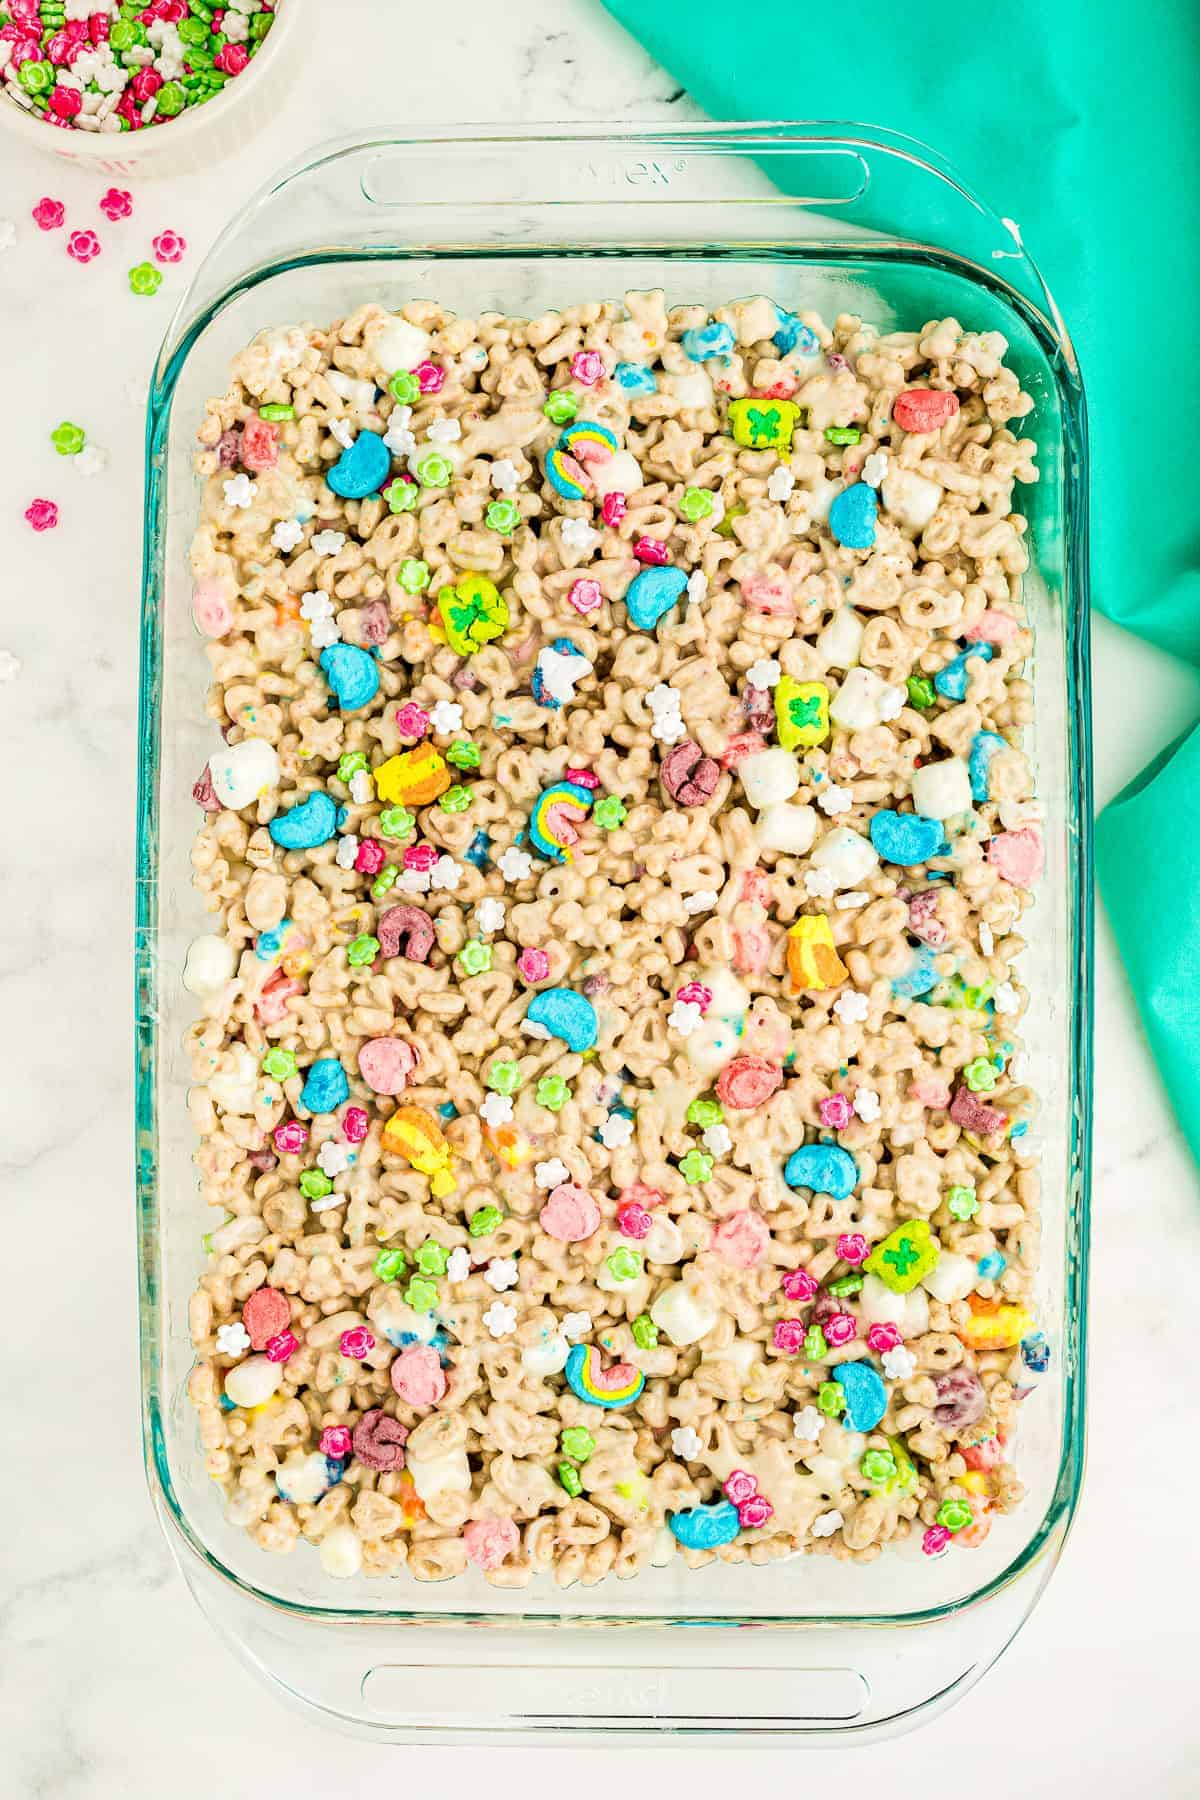 Overhead image of a pan of Lucky Charms treats